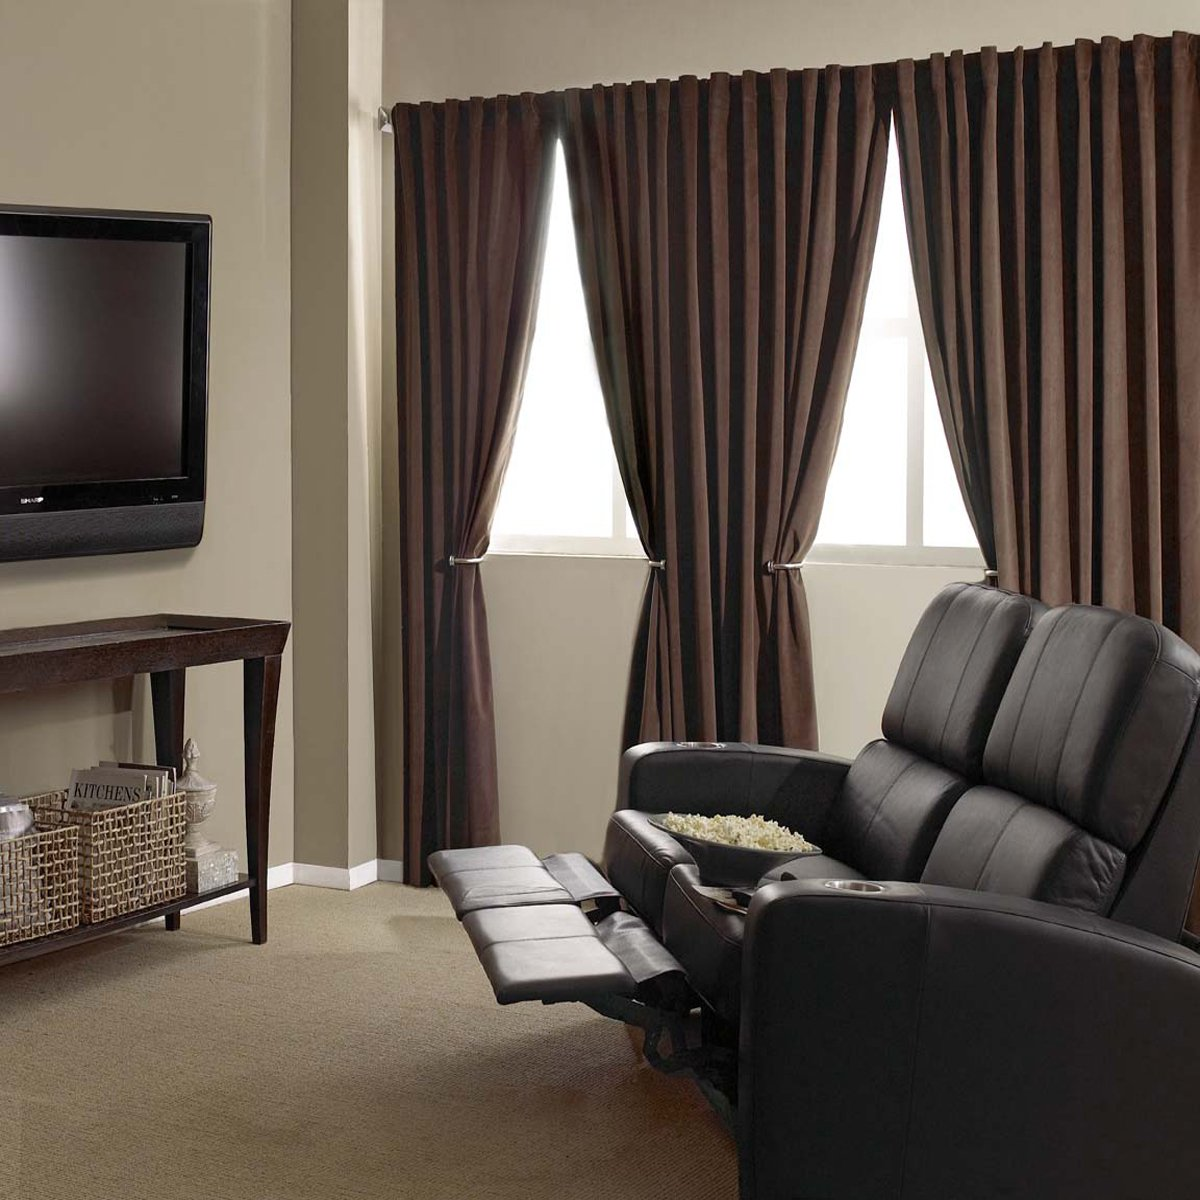 drapes zero velvet length p absolute total curtains cafe blackout panel in curtain faux